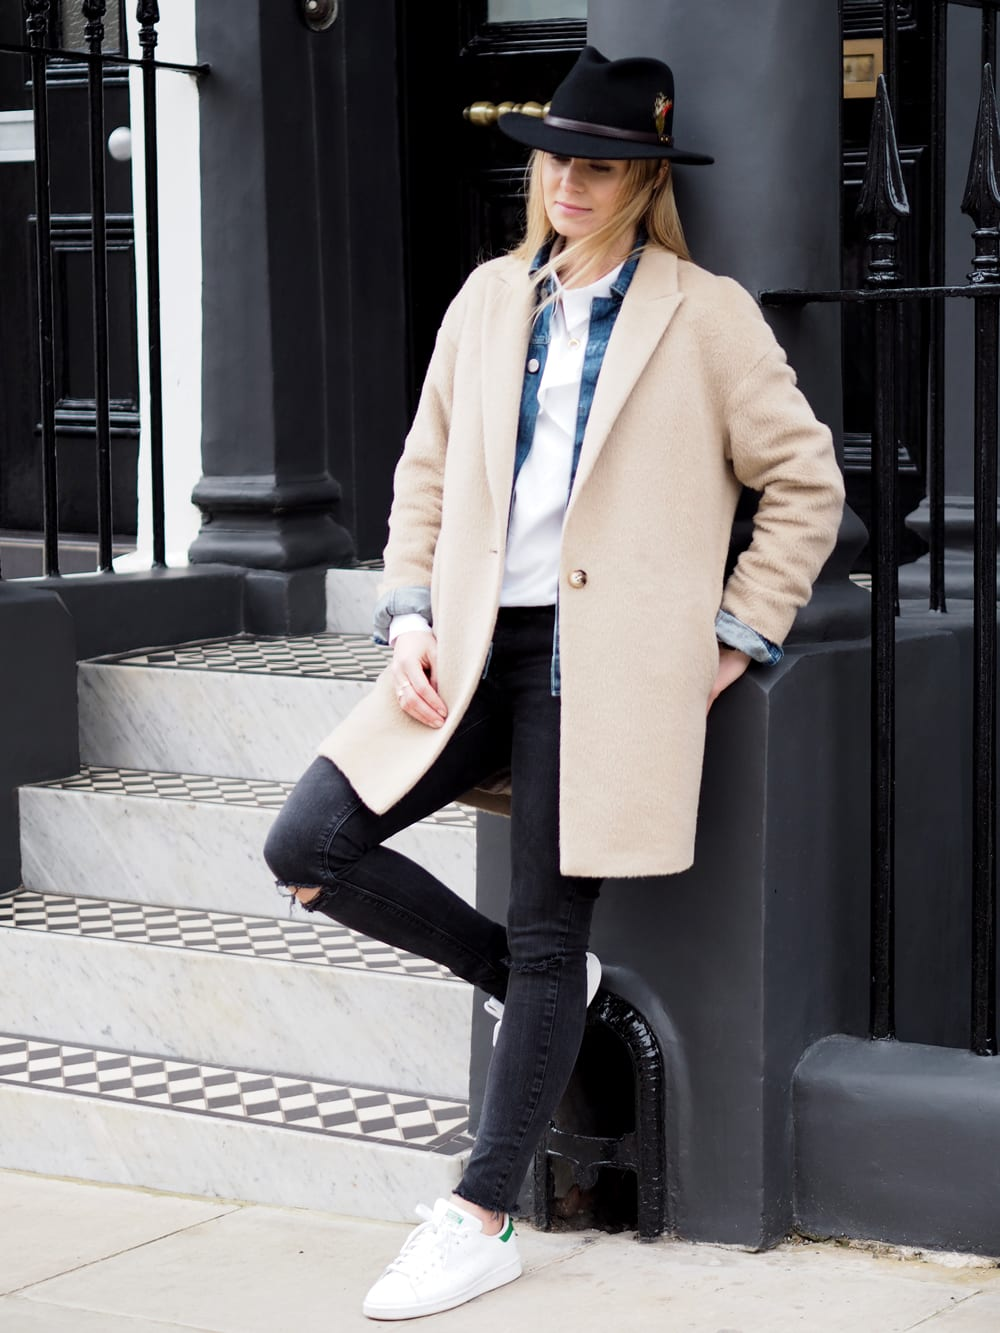 Style&Minimalism   It's Personal   Essential Spring Layers   Wearing Finders Keepers White Shirt, Wåven Denim Jacket, Camel Coat, Black Skinny Jeans, Black Fedora & Stan Smith Trainers